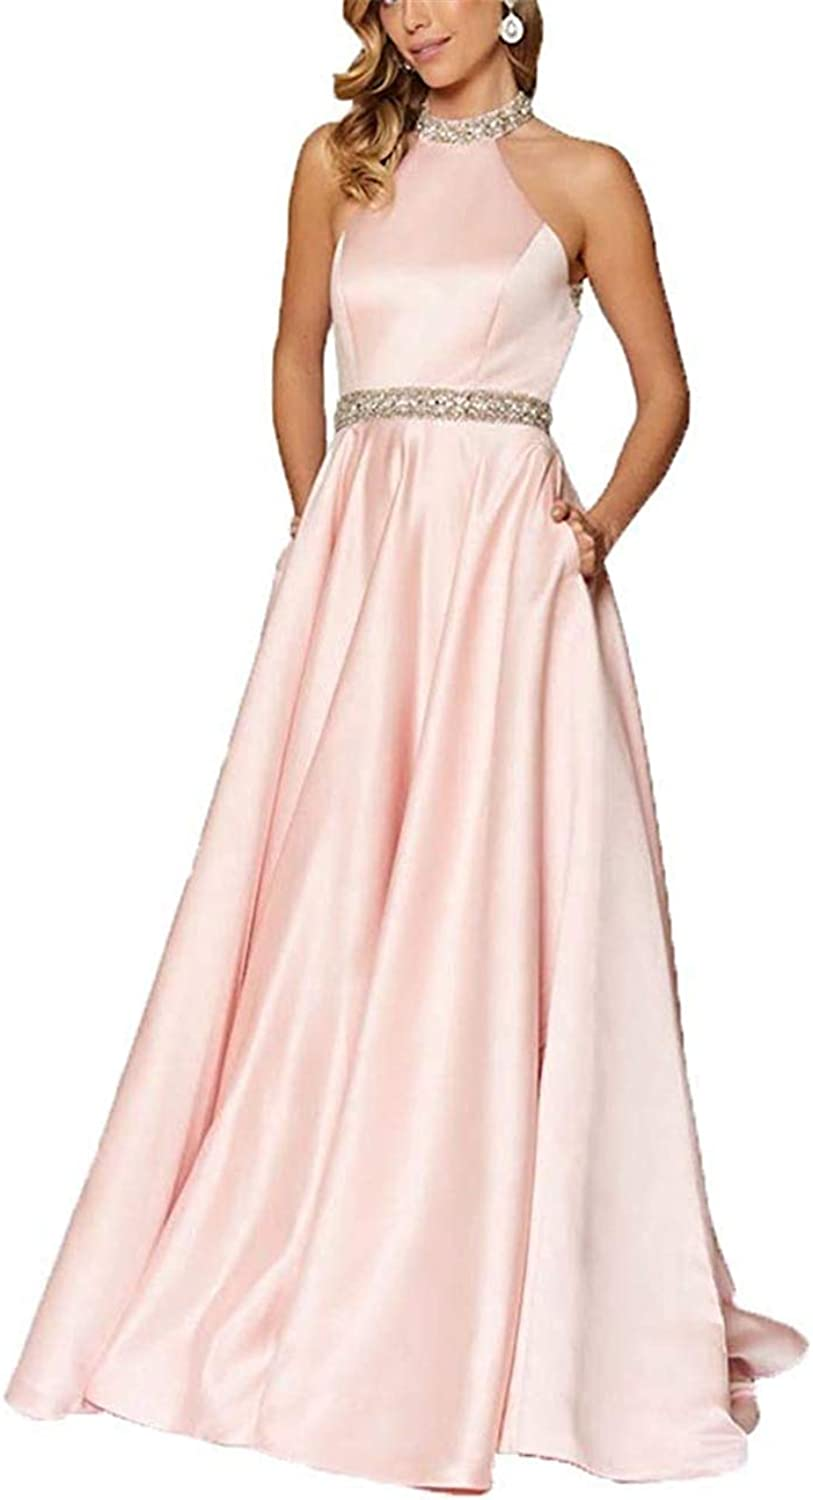 CharmingBridal Women's Beaded Halter Backless Evening Gown Long Prom Dresses